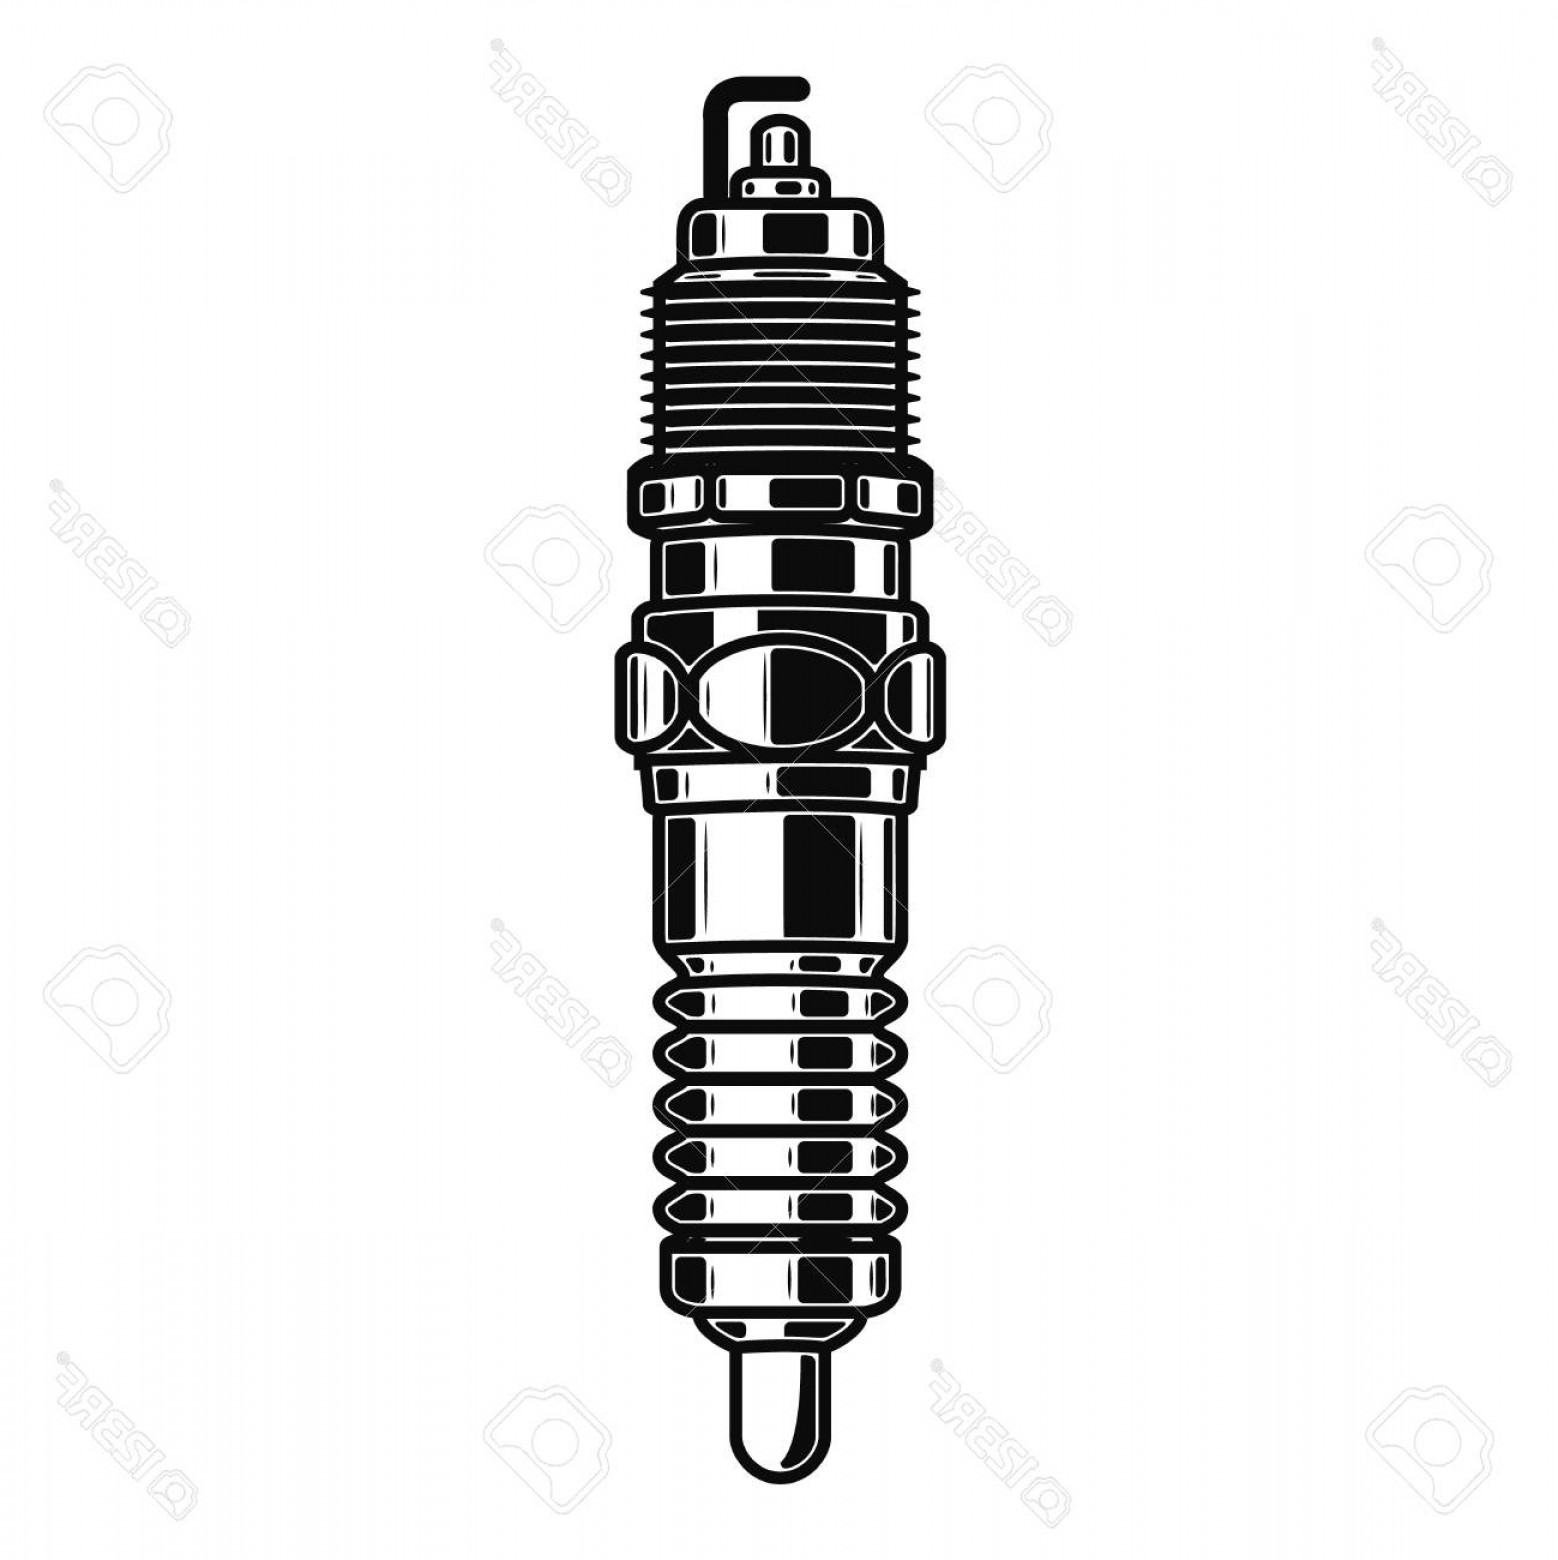 Spark Plug Vector: Photostock Vector Spark Plug Illustration Isolated On White Background Design Element For Emblem Sign Poster Label Vec